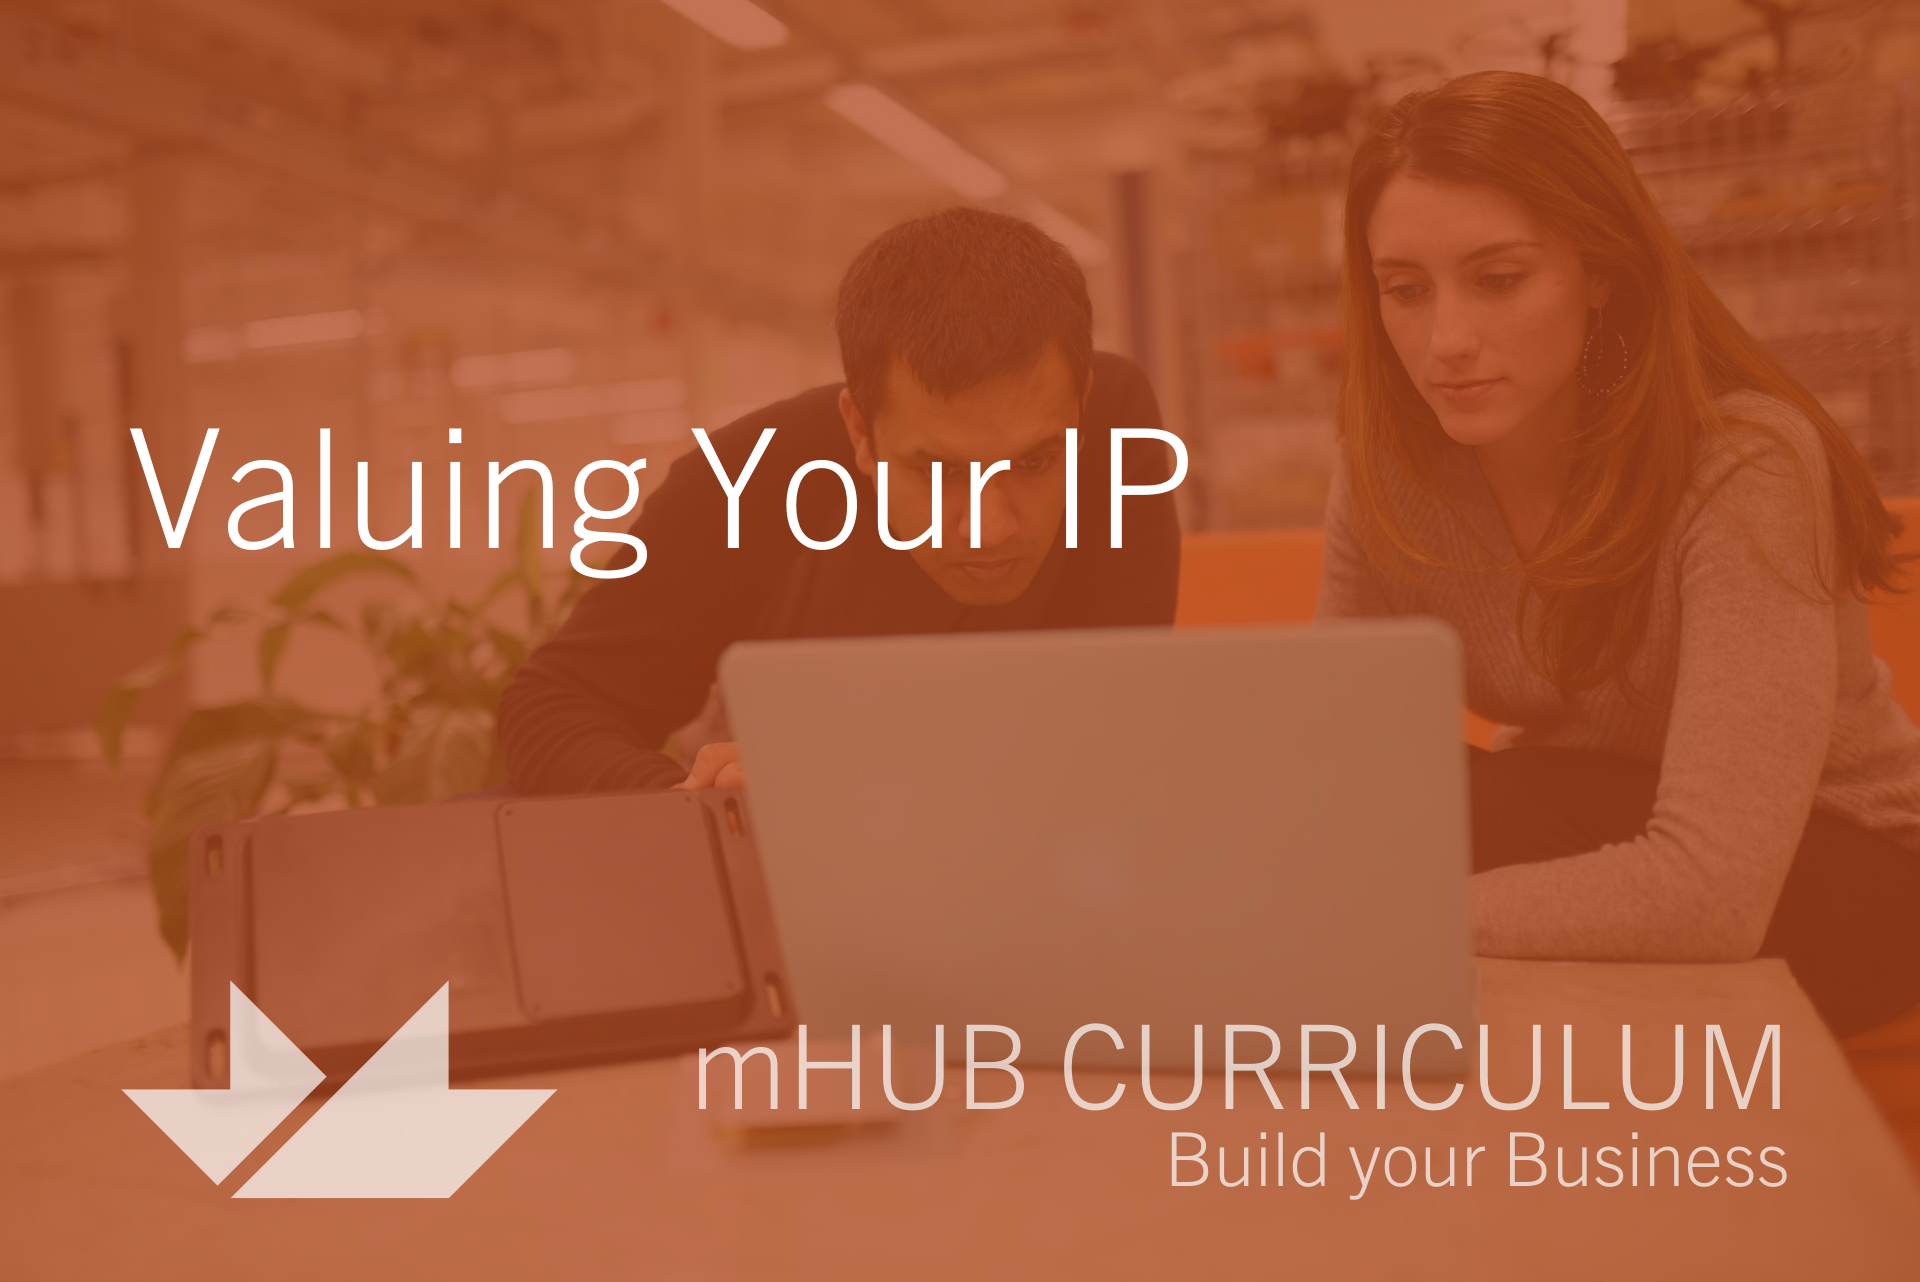 Valuing Your IP